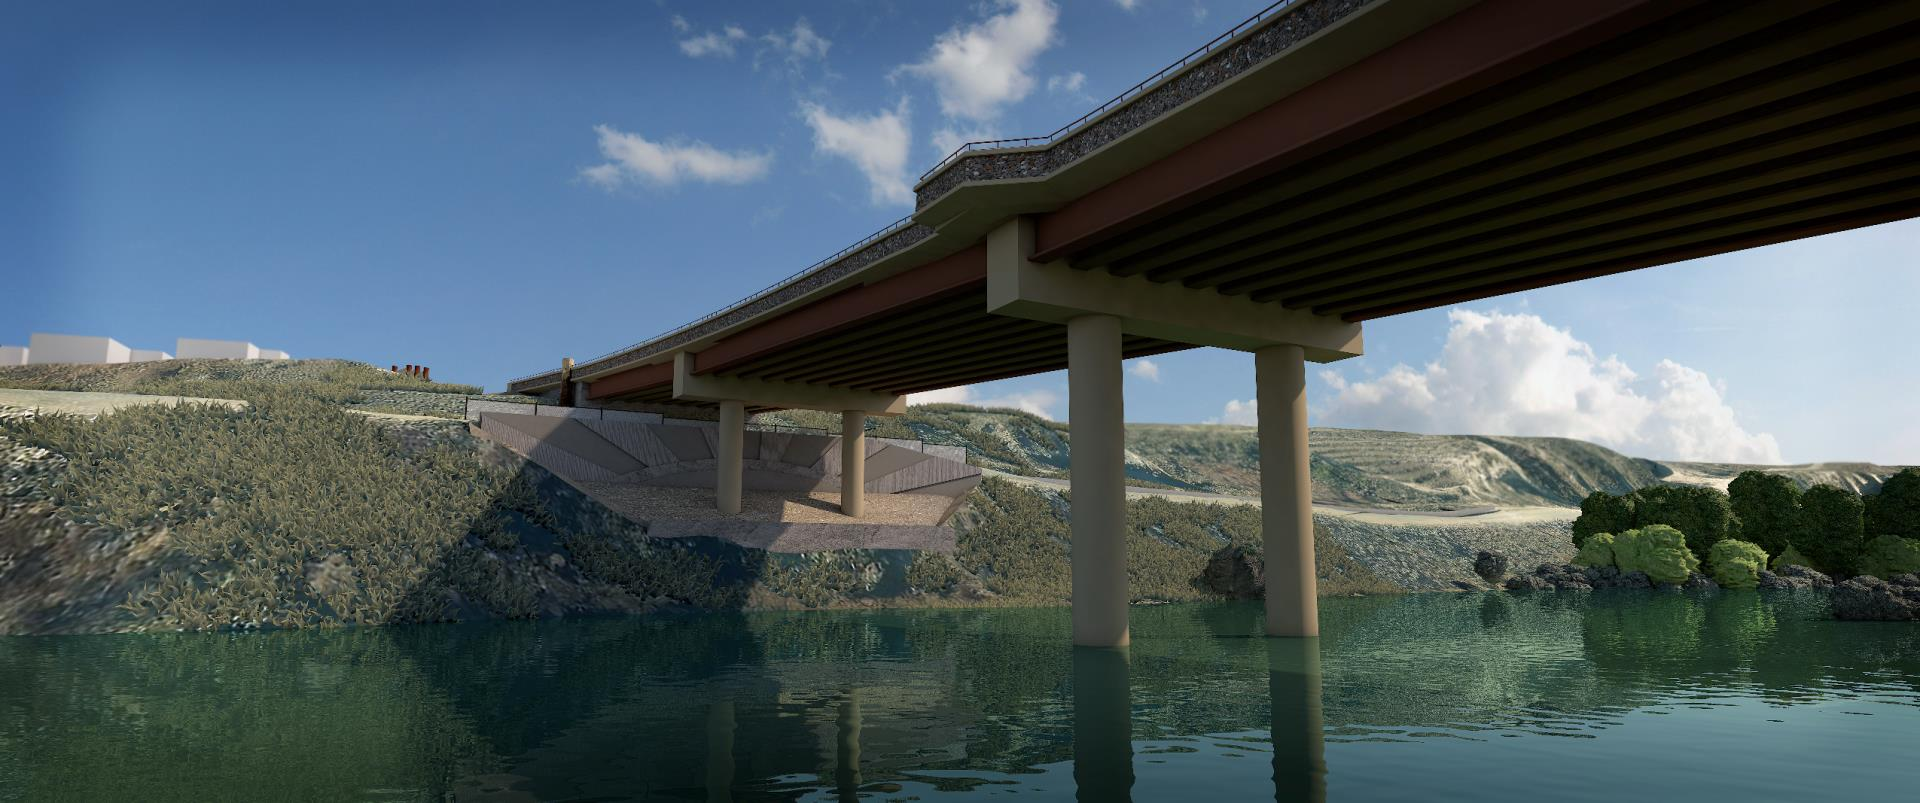 rendering of anticipated bridge deck from under the bridge